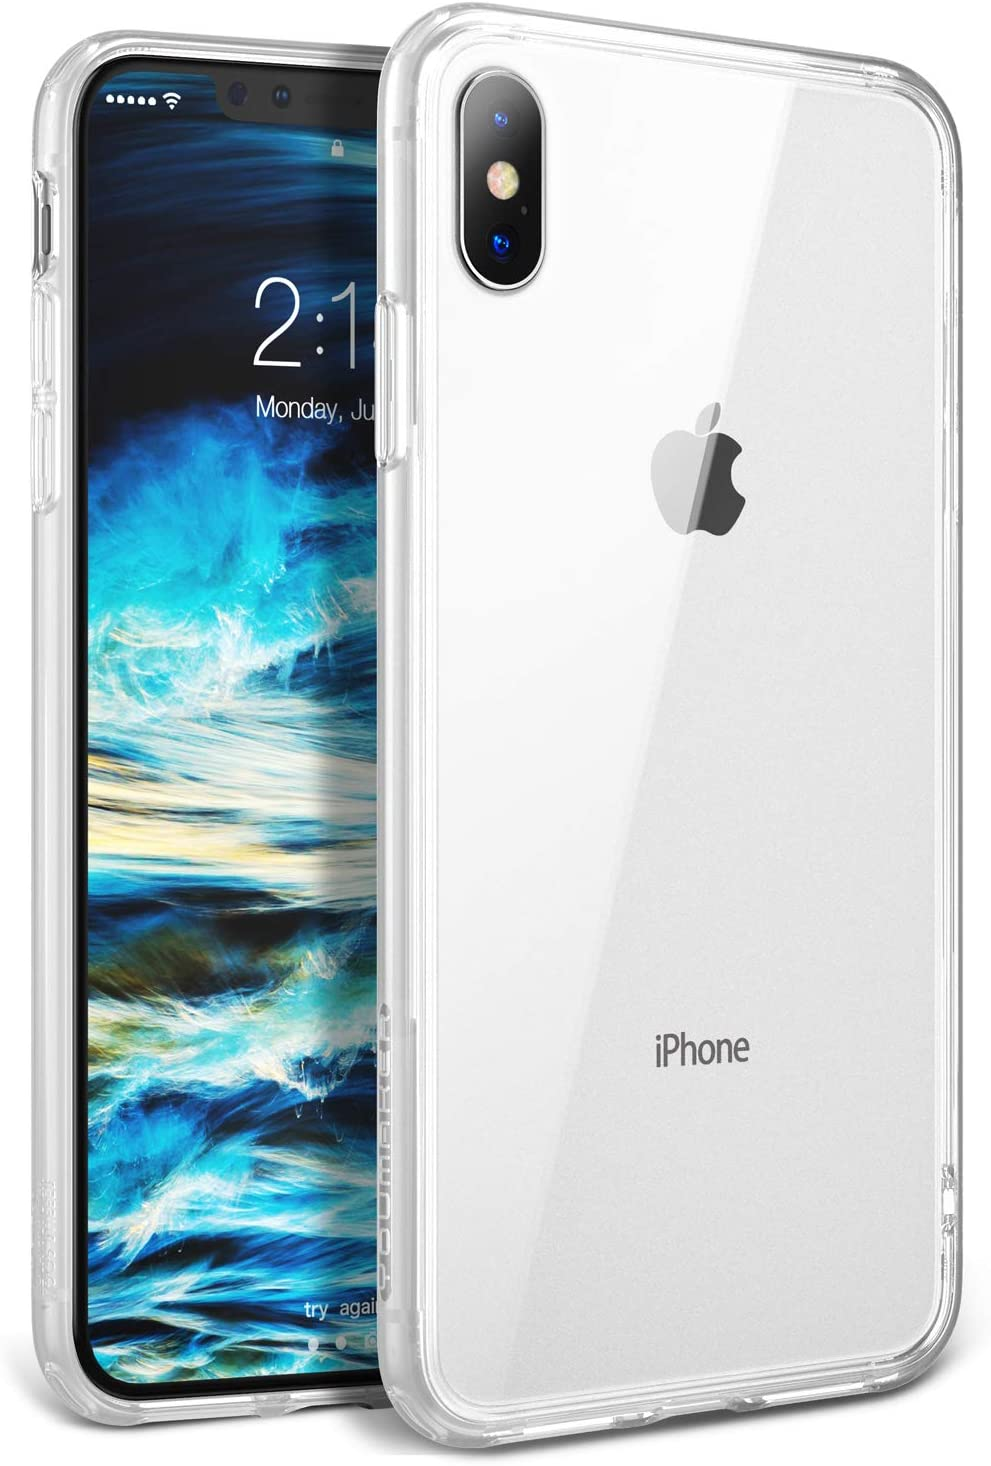 YOUMAKER Premium Crystal Clear Hybrid Case for iPhone Xs Max, Slim Fit Lightweight Frosted Clear Bumper Scratch Resistant Drop Protection Shockproof Protective Cover for All New Apple iPhone Xs Max 6.